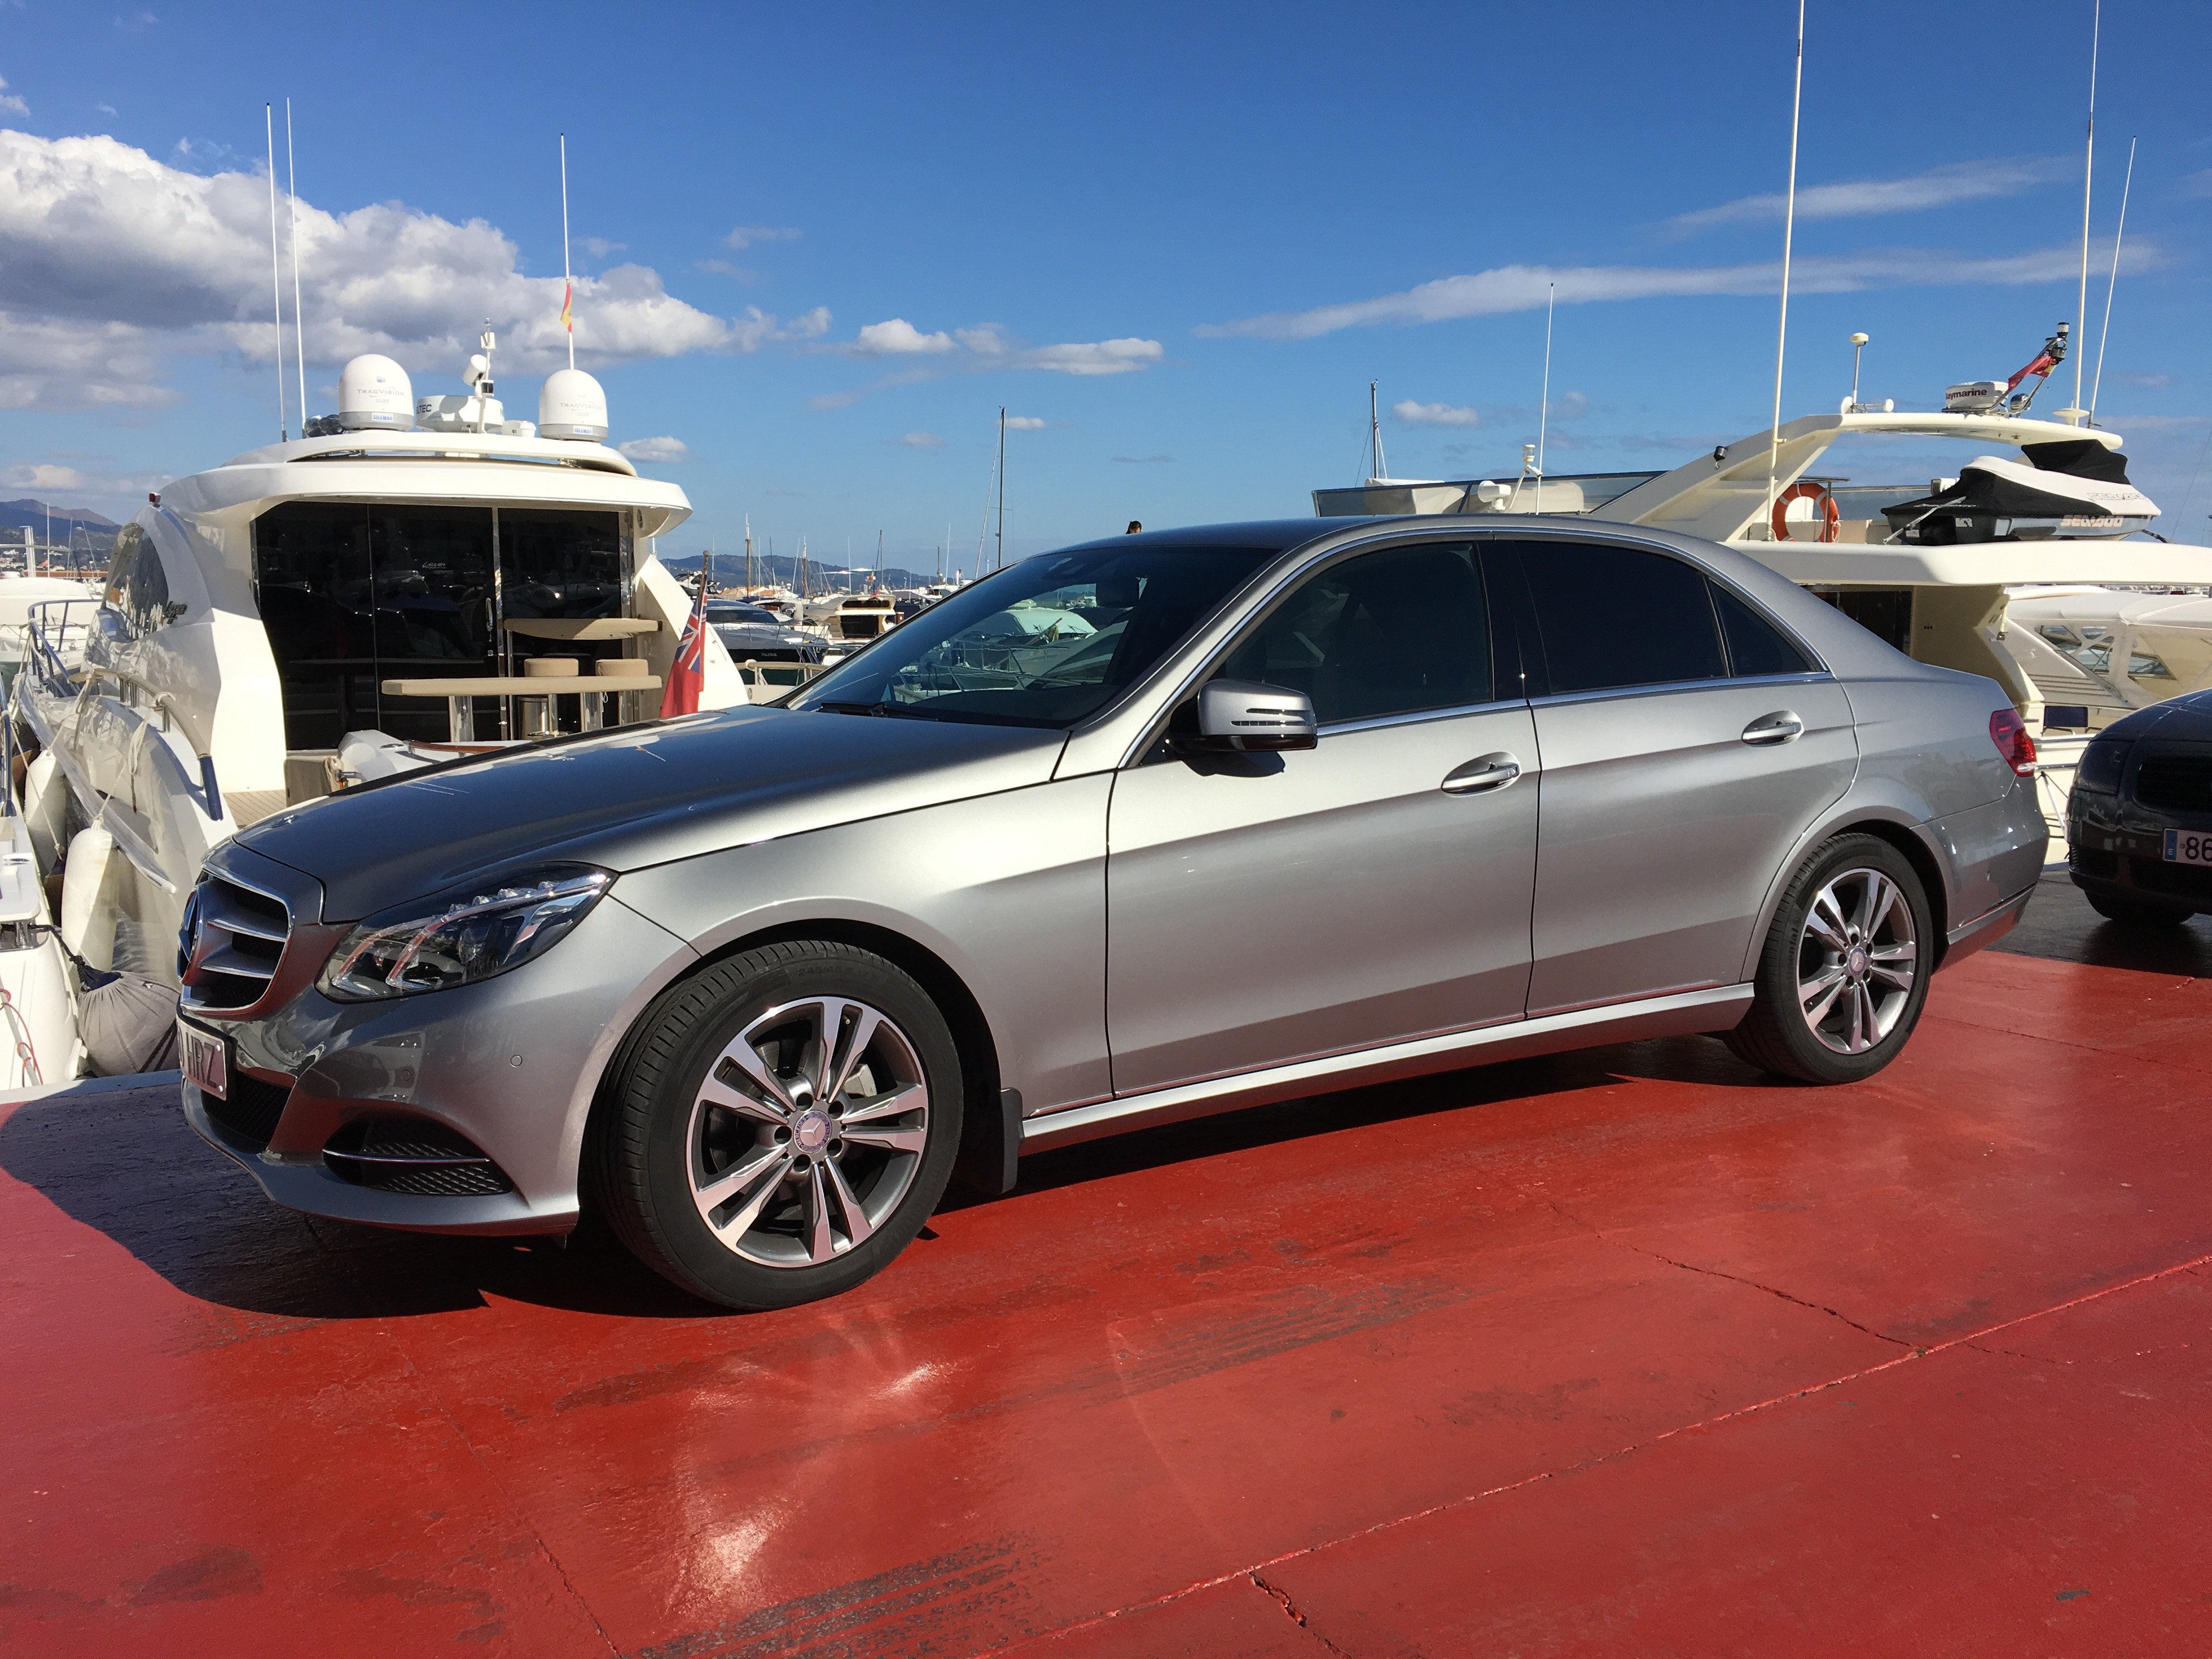 Luxury Transfers from Malaga AGP to Marbella Puerto Banus 5 Star Hotels